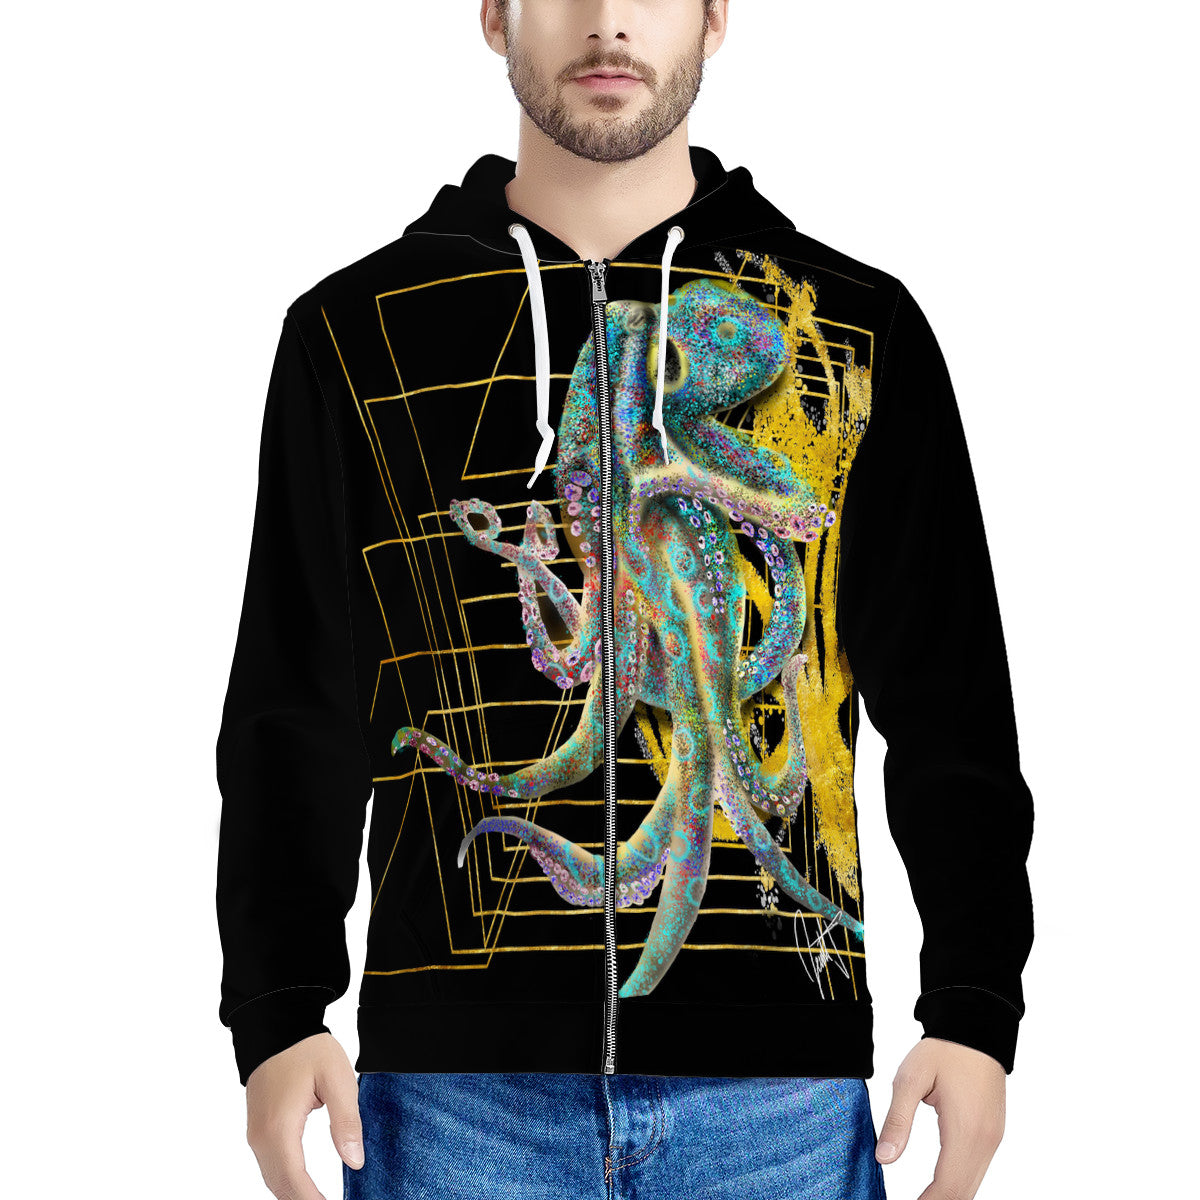 Octupus Men's All Over Print Zip Hoodie